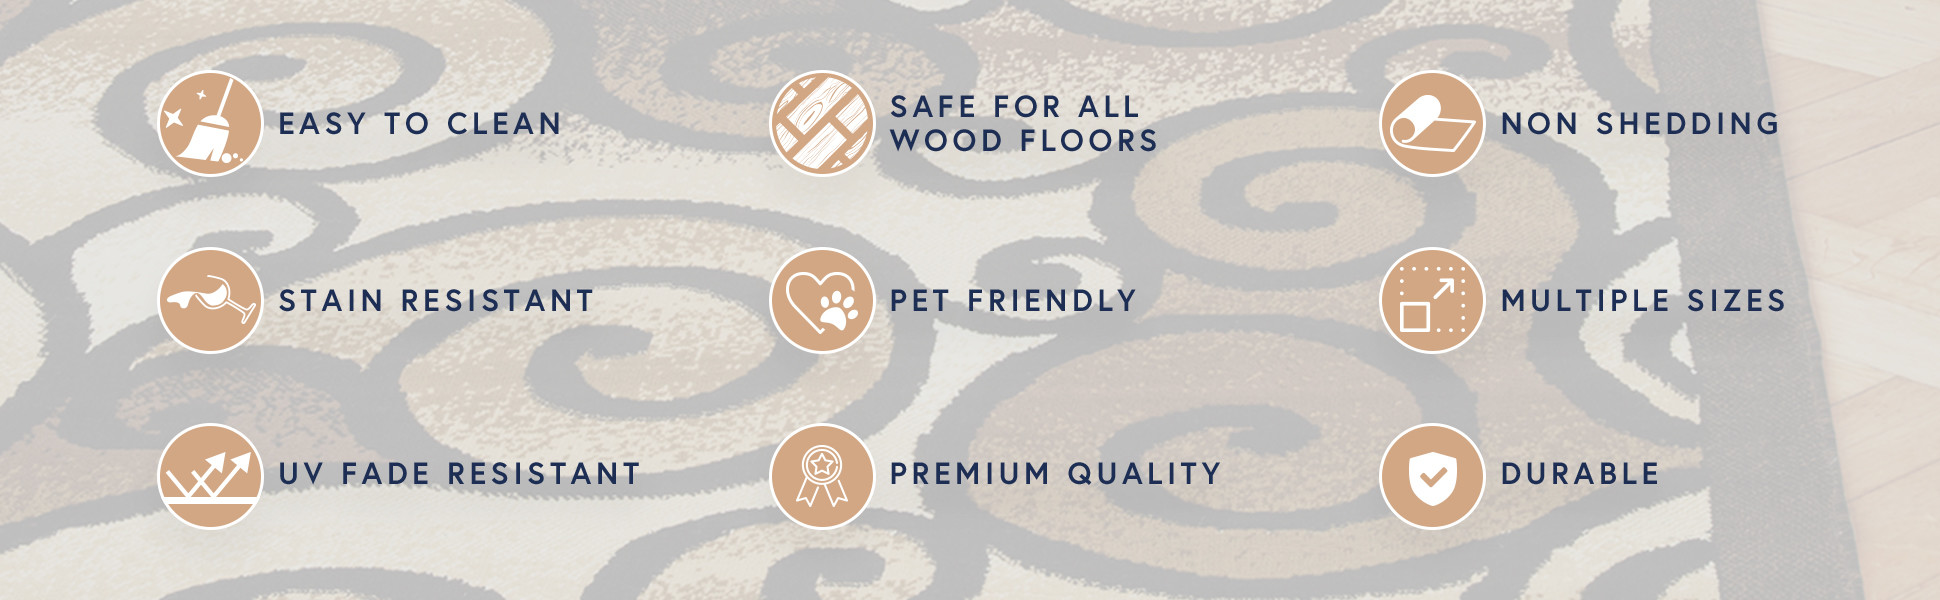 Beverly rug princess collection description banner